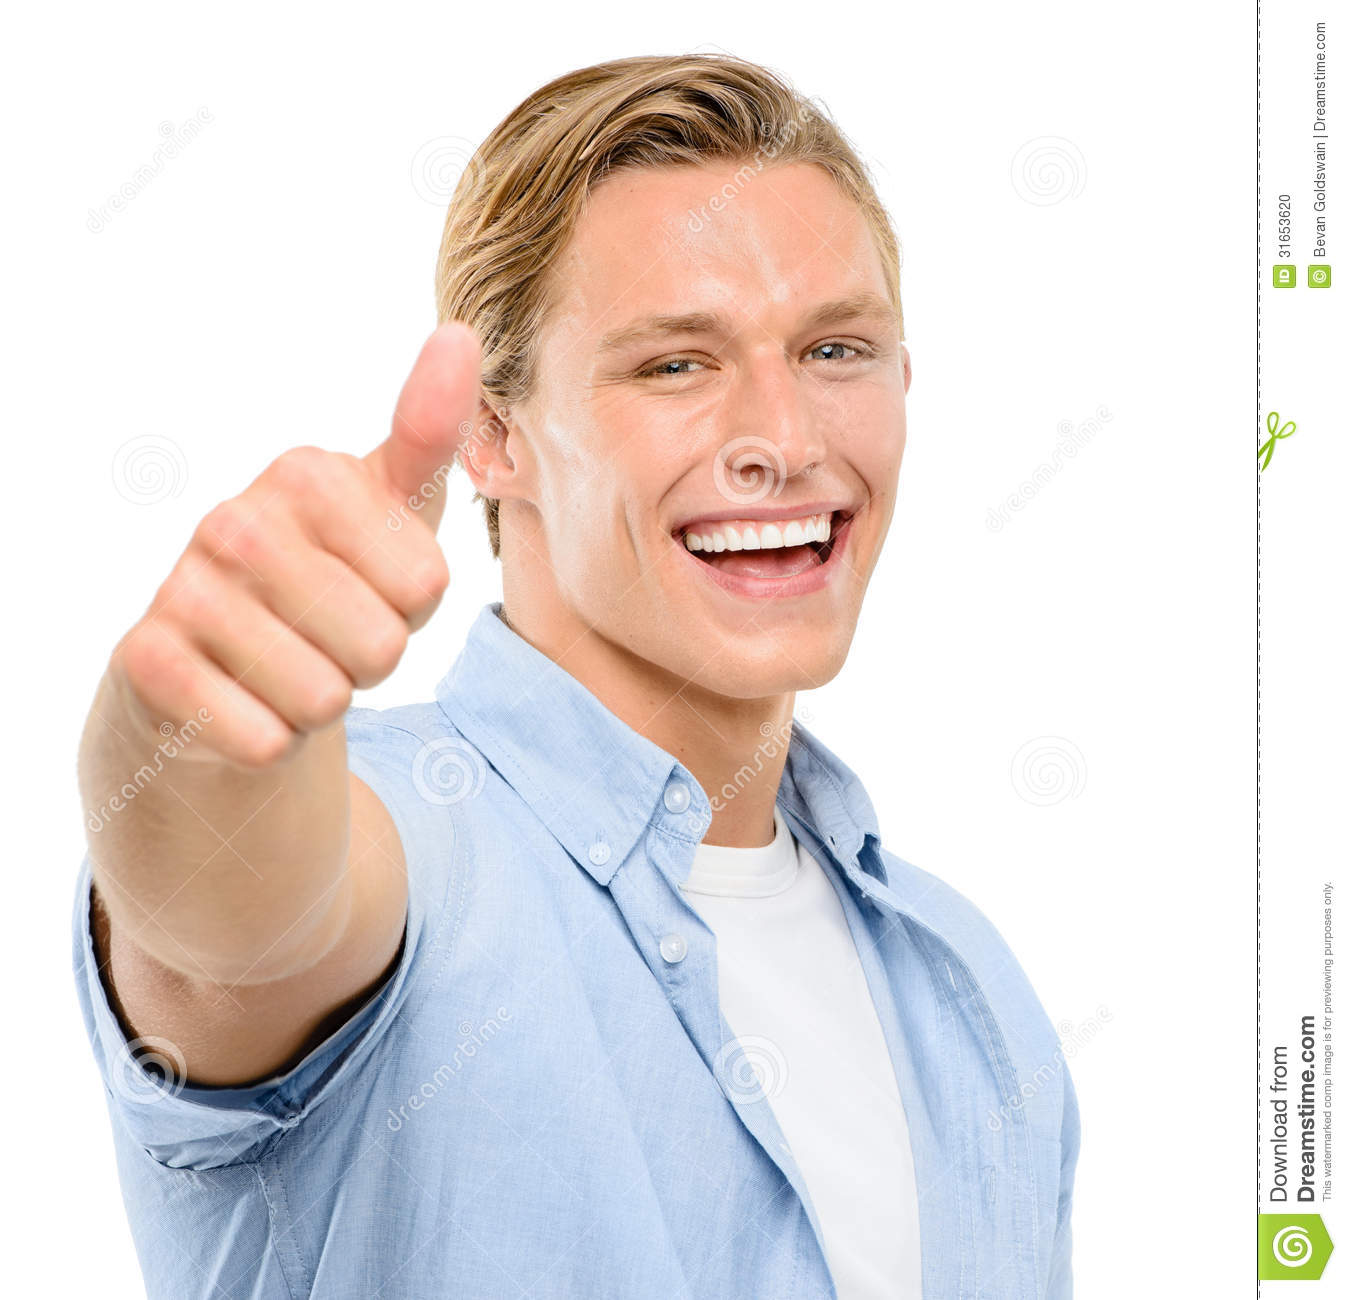 happy-young-man-thumbs-up-isolated-white-background-showing-sign-smiling-31653620.jpg